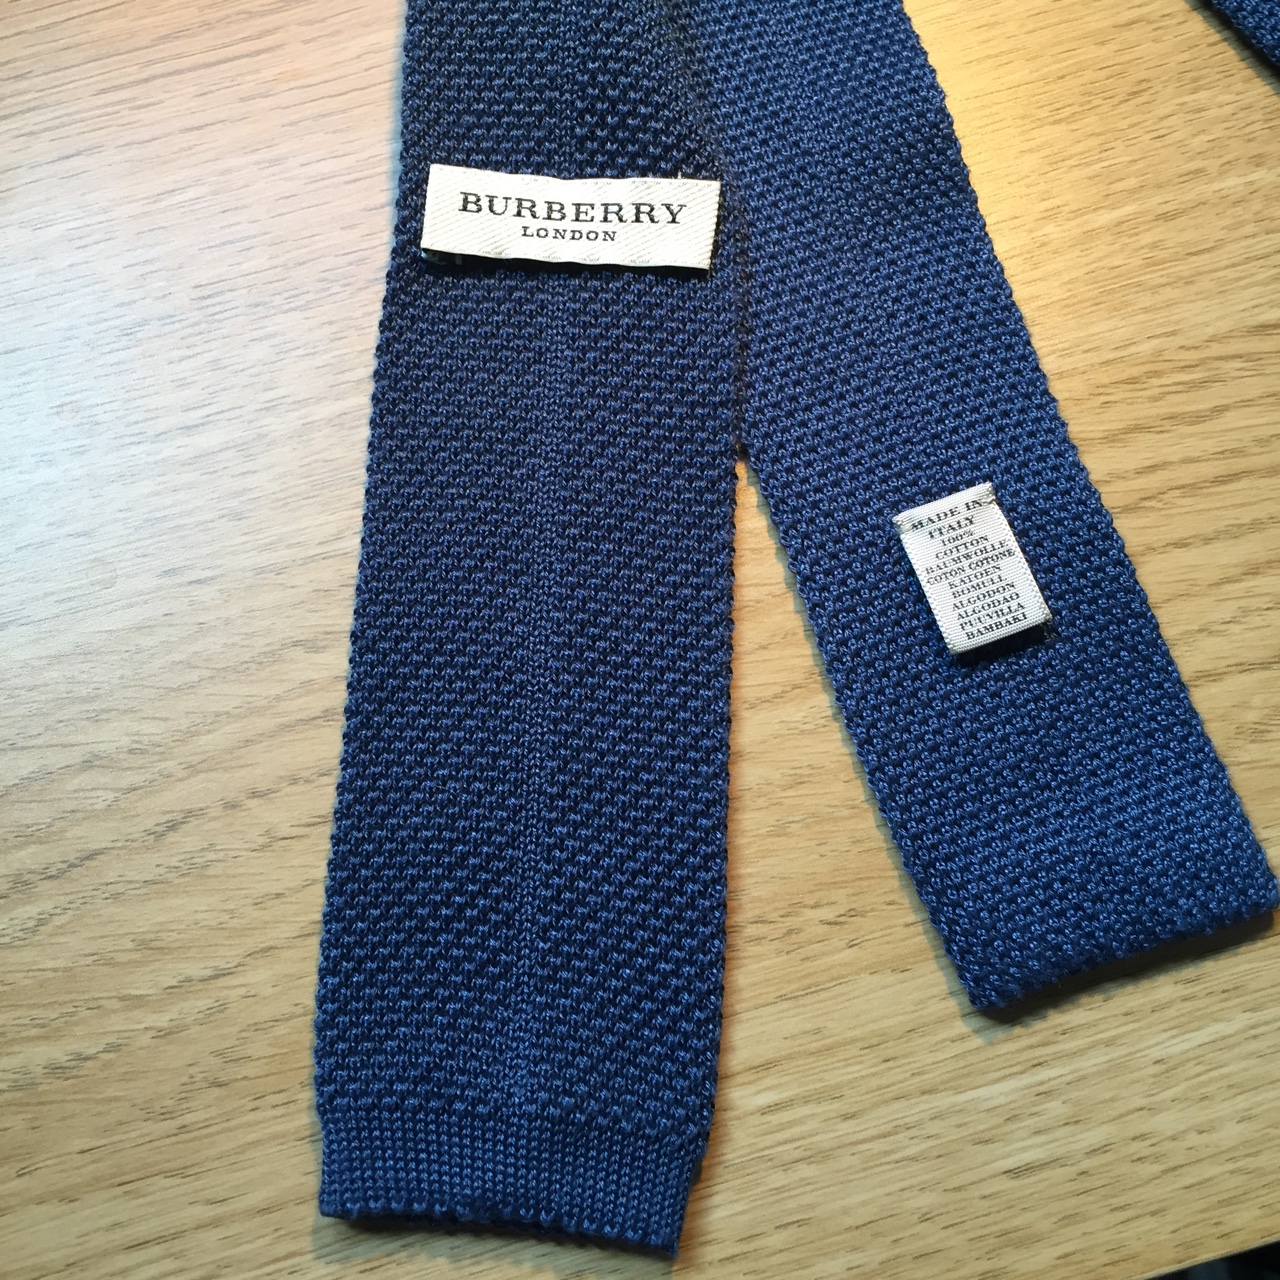 dd6b68817 New Burberry Knitted Blue Tie, bought from Mr Porter... - Depop